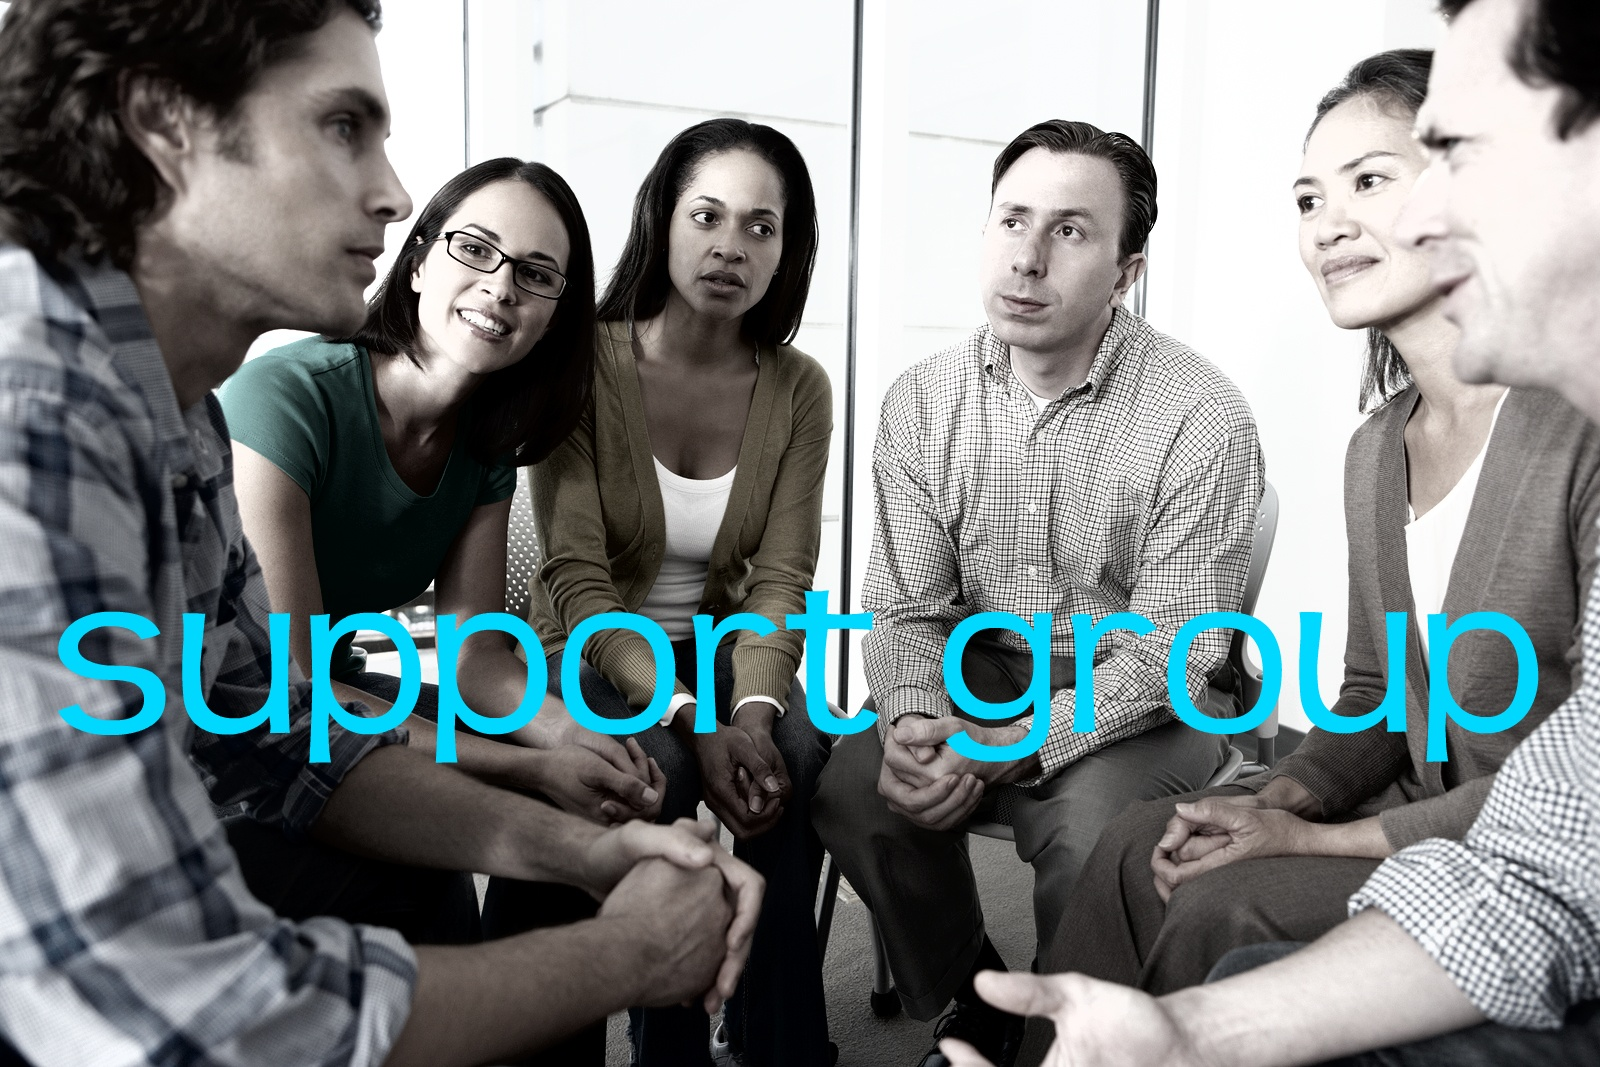 Does somebody close to you struggle with addiction? Join our free local support group